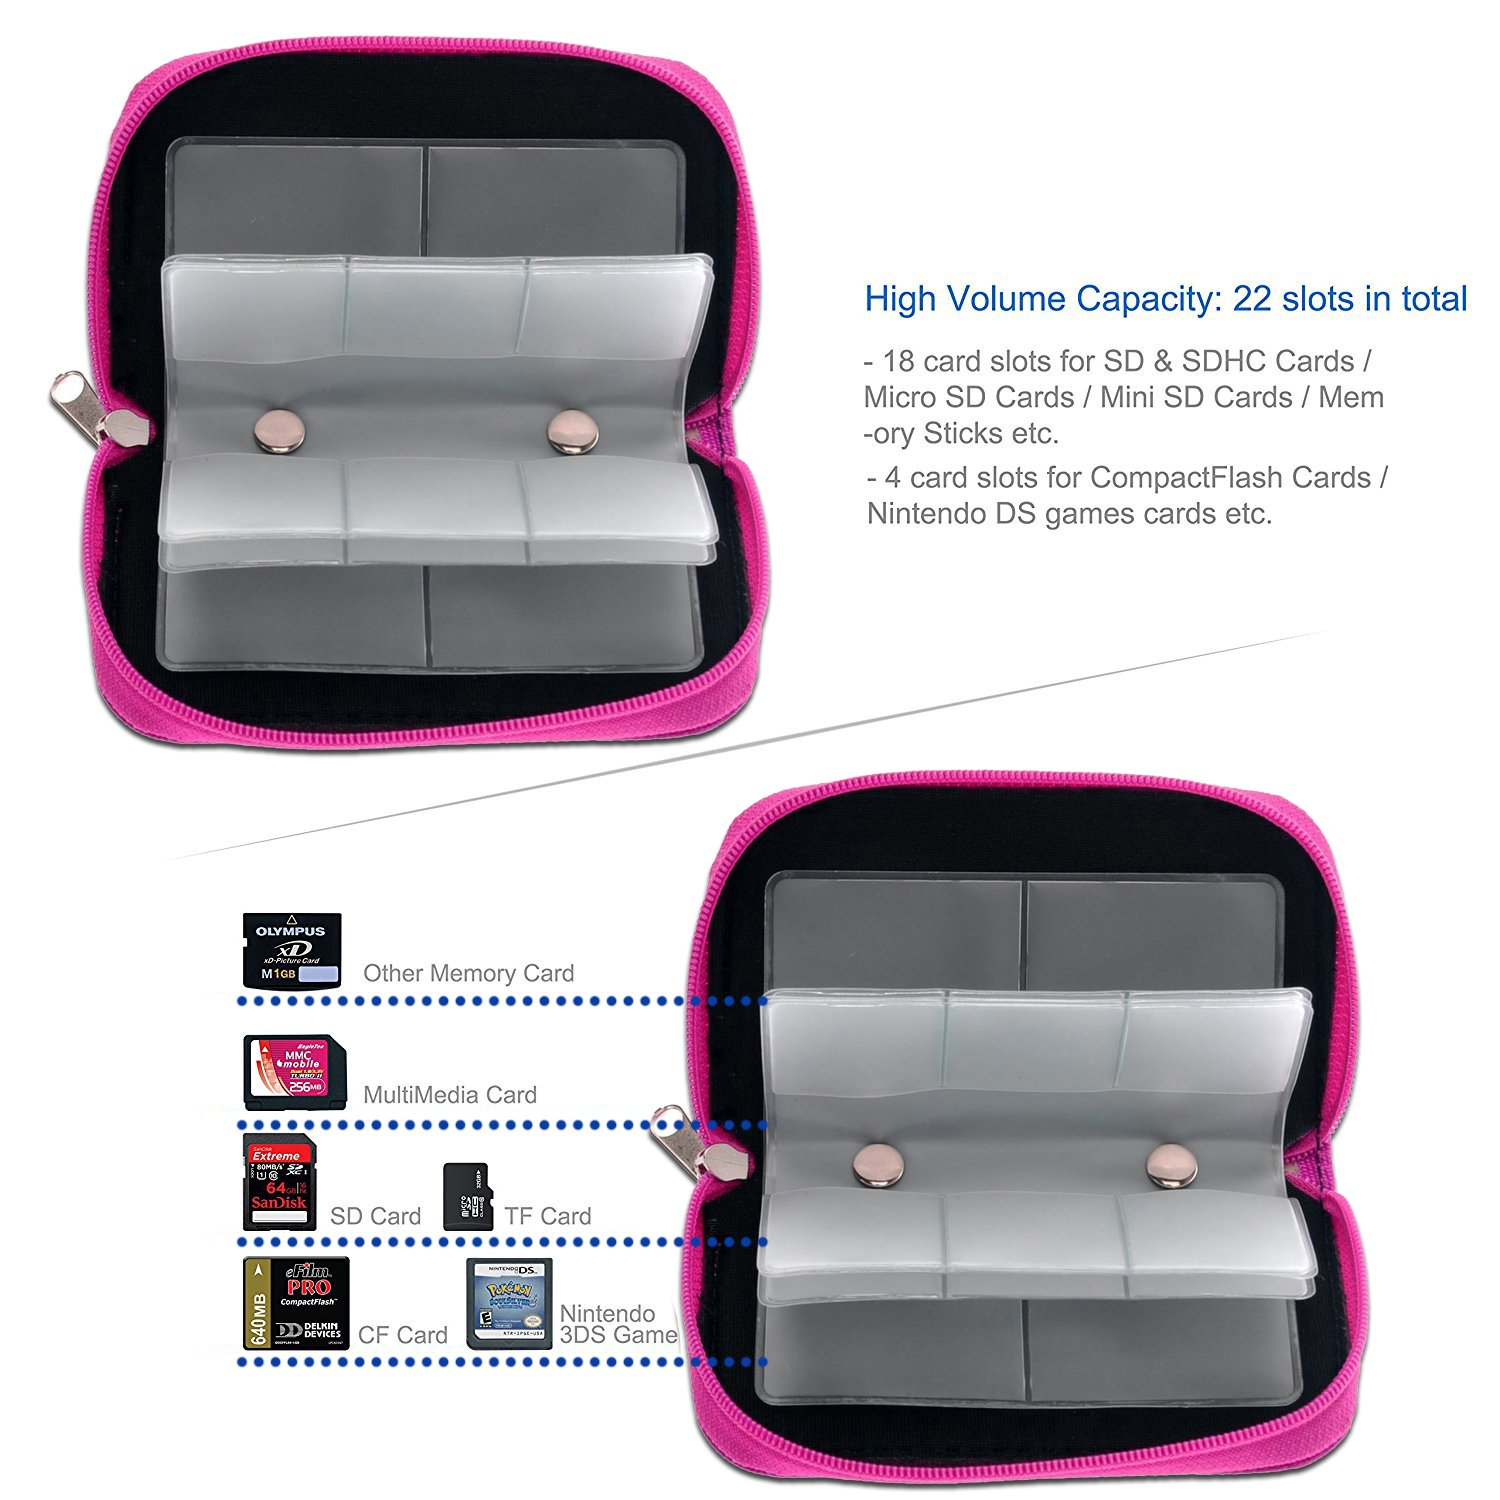 Memory Card Carrying Case - Suitable for SDHC and SD Cards, Mixtecc 8 Pages and 22 Slots Memory Card Holder Bag Wallet Bag for Media Storage ...